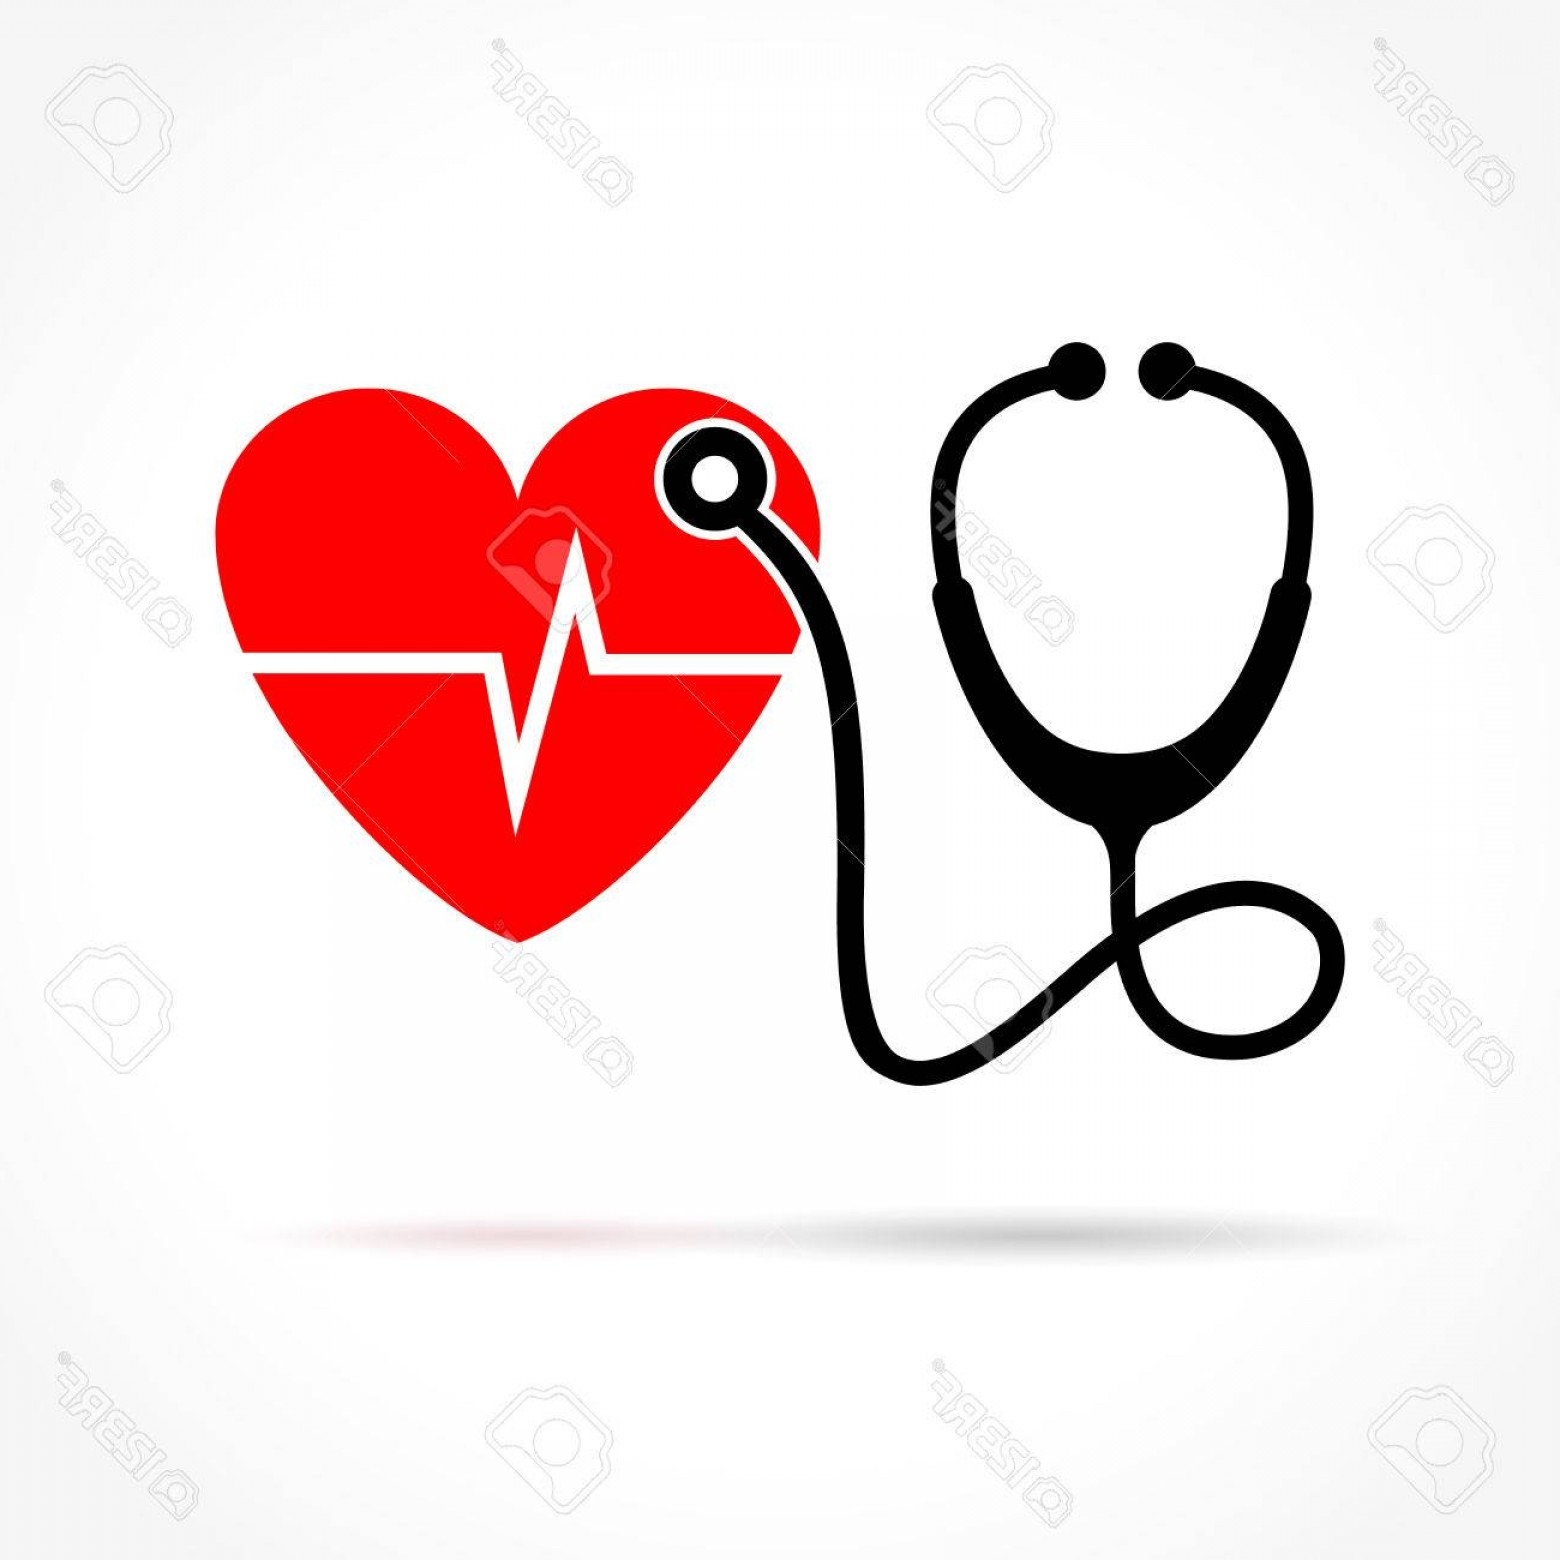 Stethoscope With Heart Vector Art: Photostock Vector Illustration Of Stethoscope And Heart